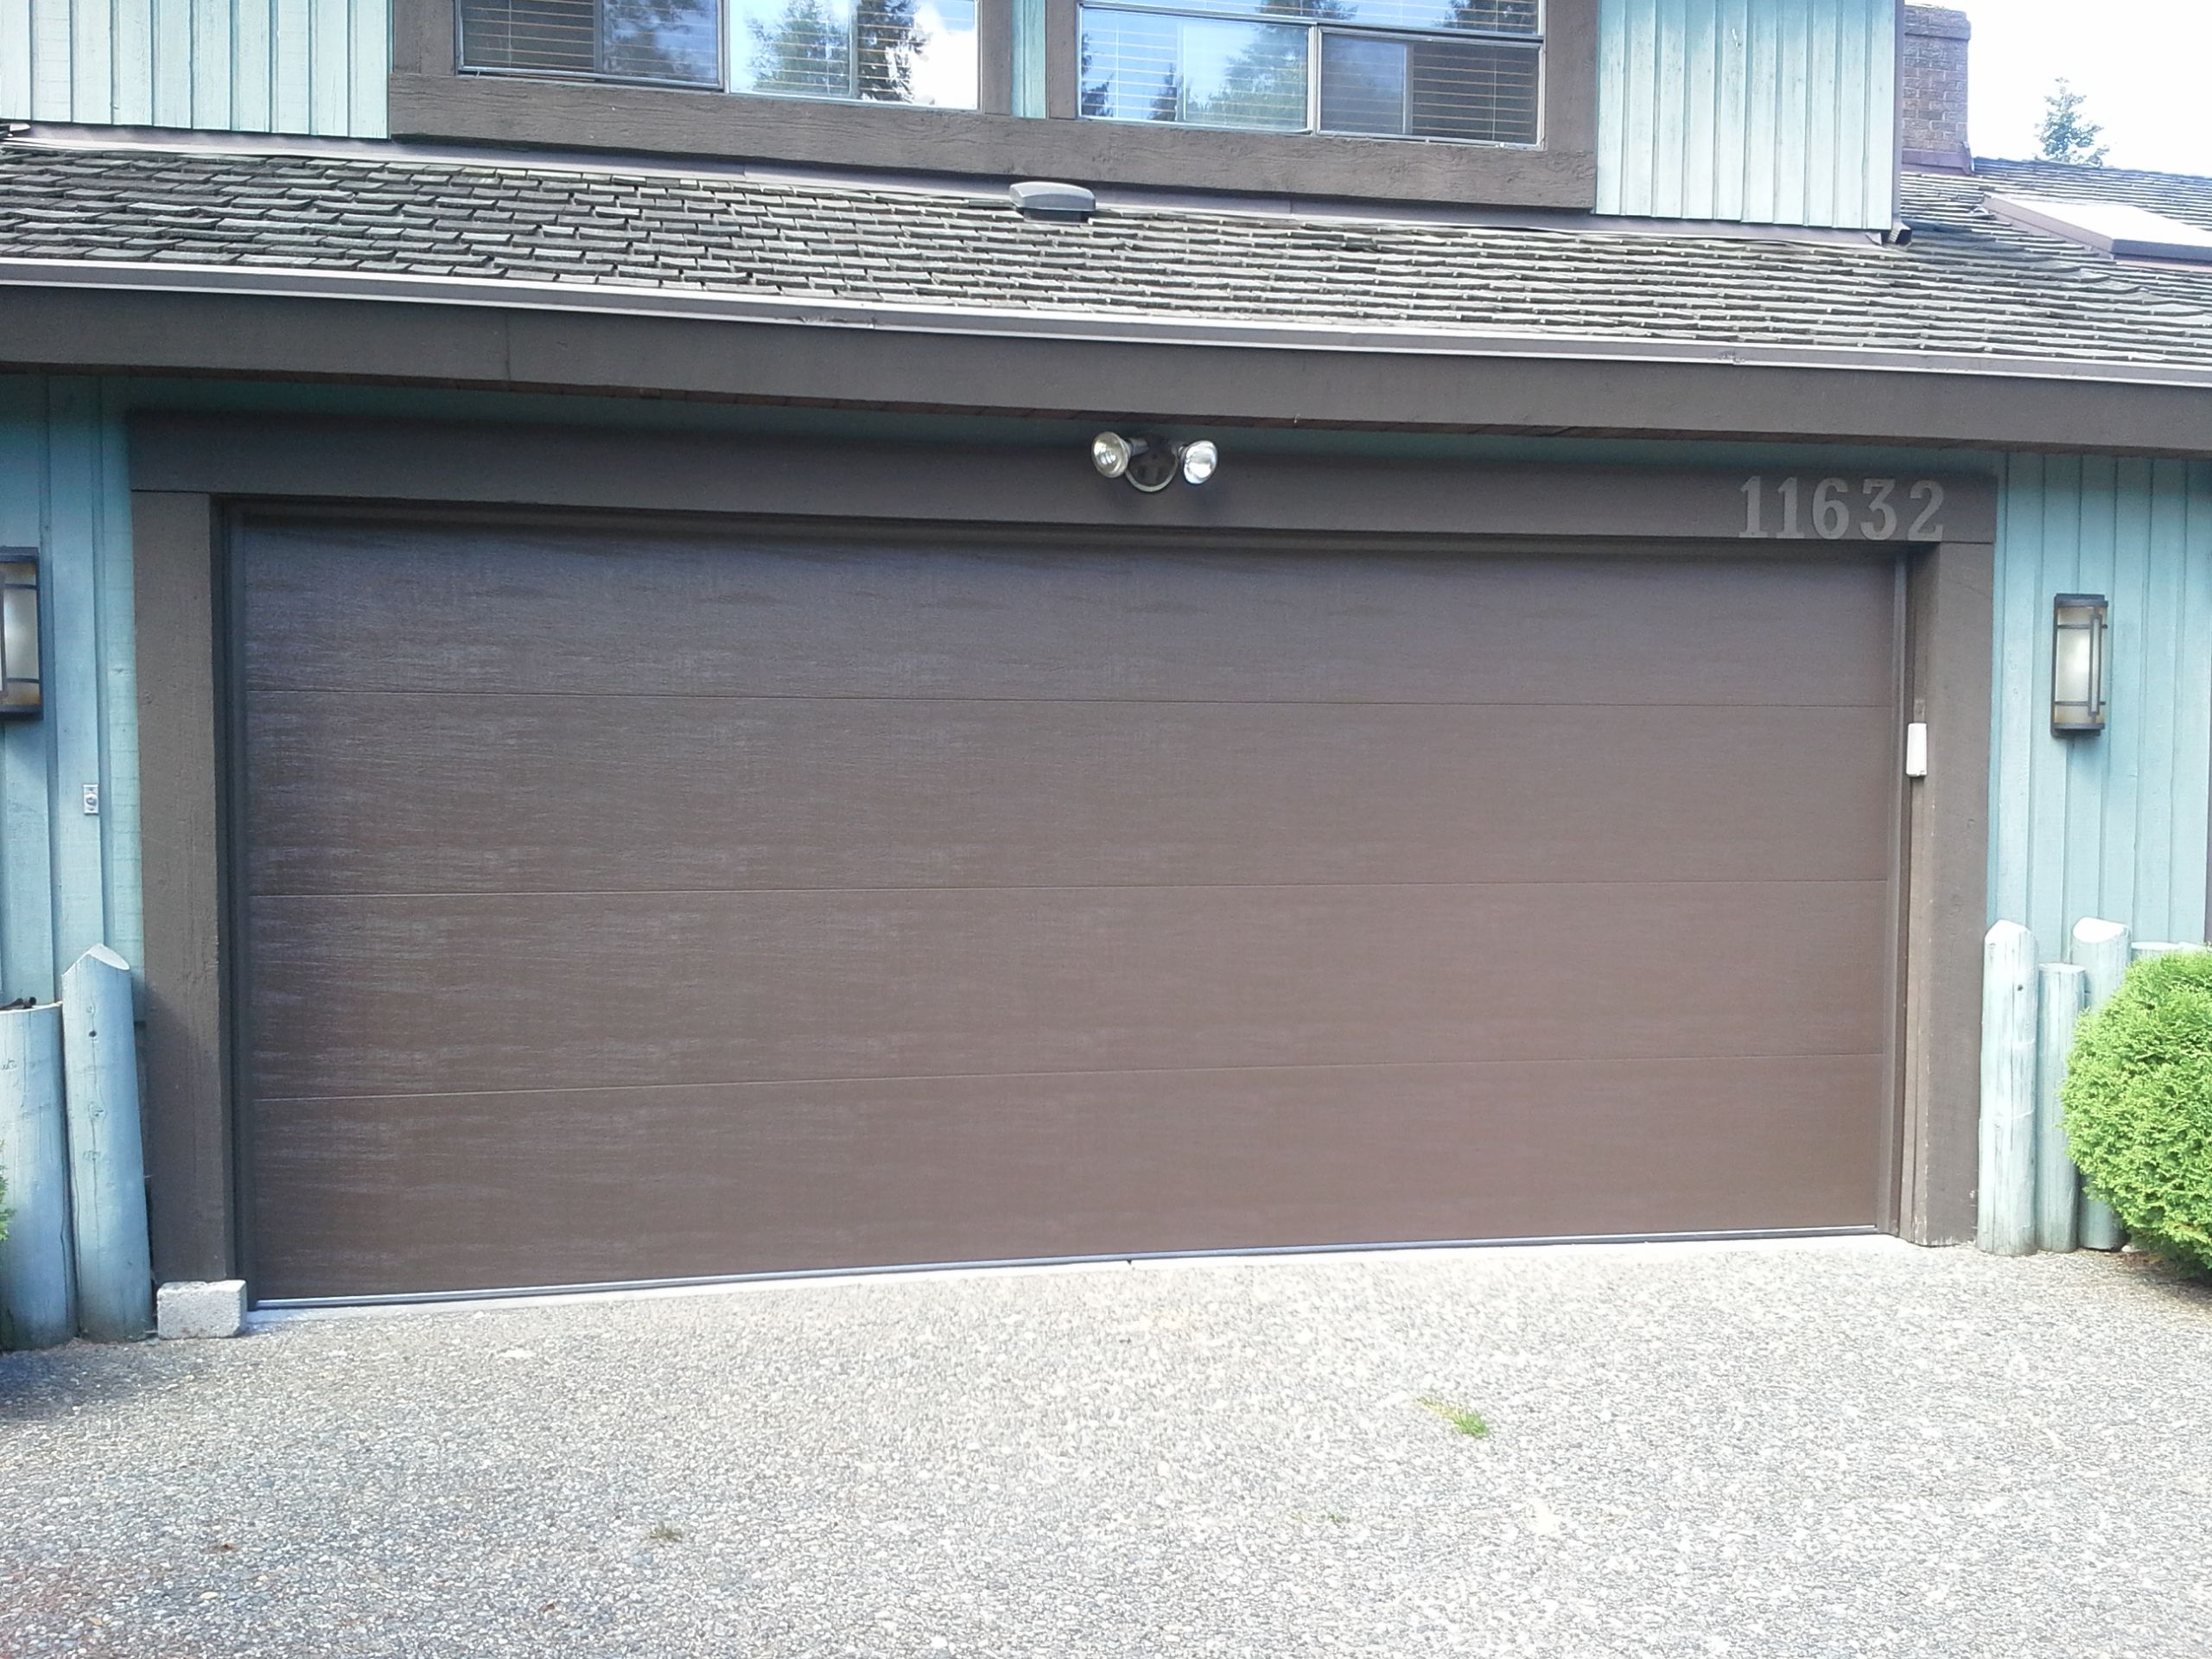 This Clopay Classic Premium Garage Door in a Flush Panel